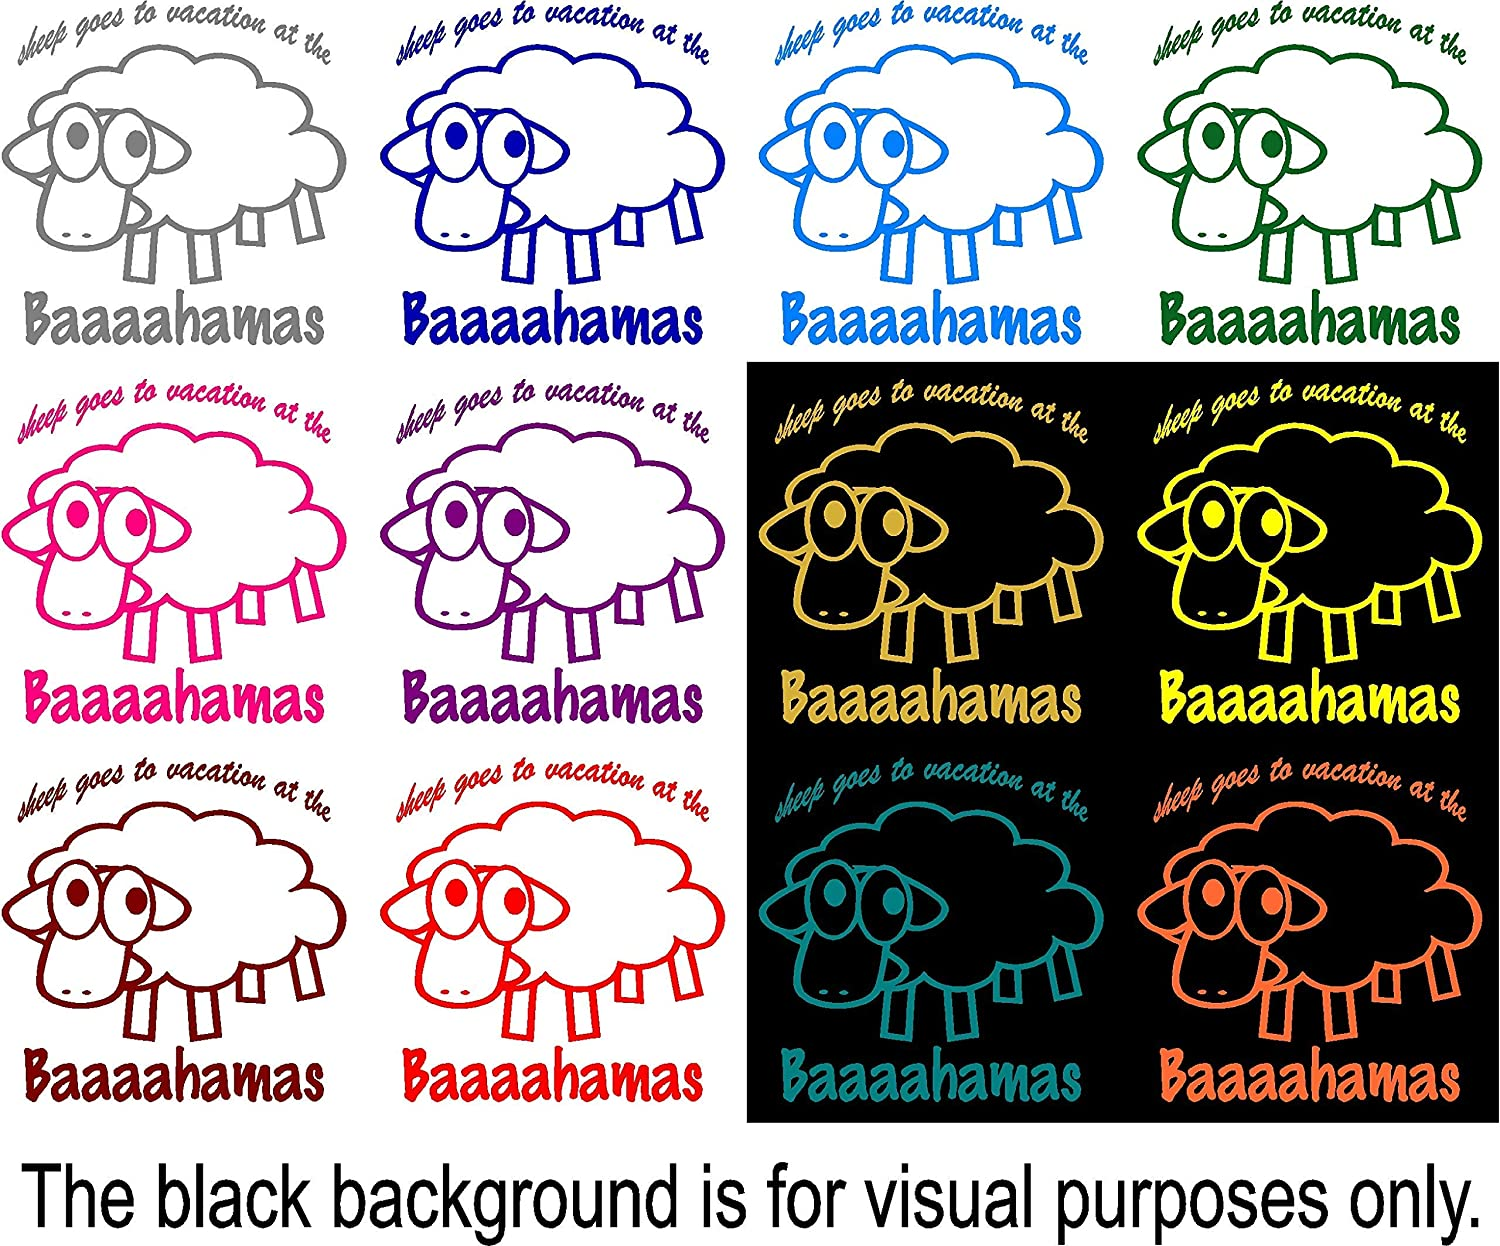 Sheep Goes To Vacation At The Baaaahamas Funny Animal Pun Decal Choose Color V and T Gifts